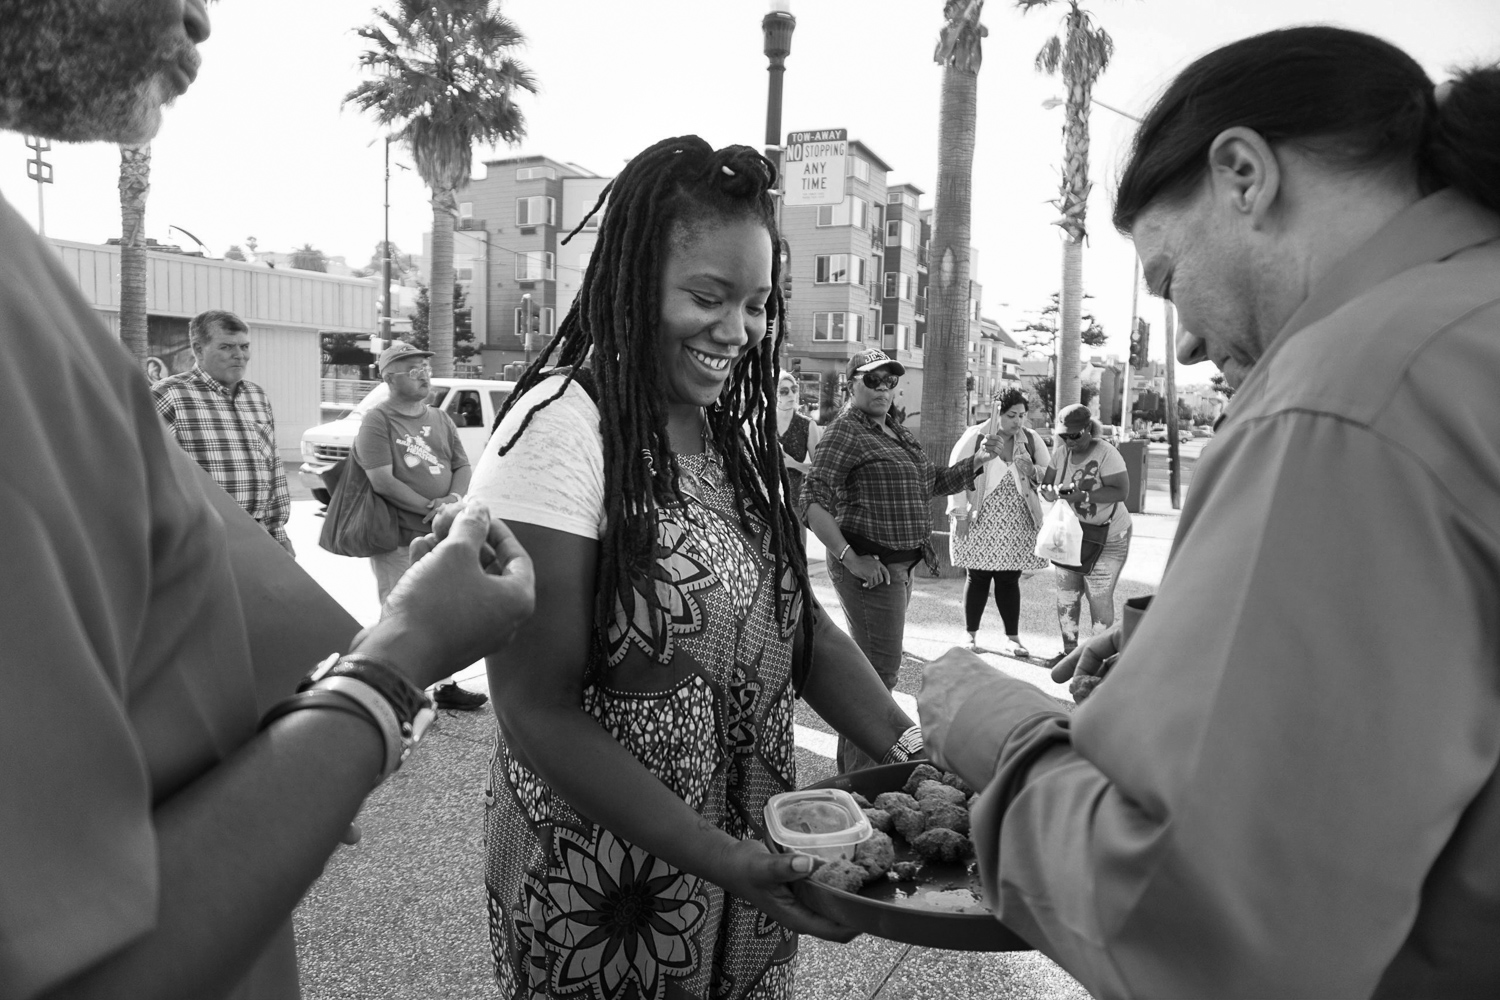 Aliyah Dunn-Salahudin passes out dumplings during a vigil to honor a young man shot by police 50 years ago.